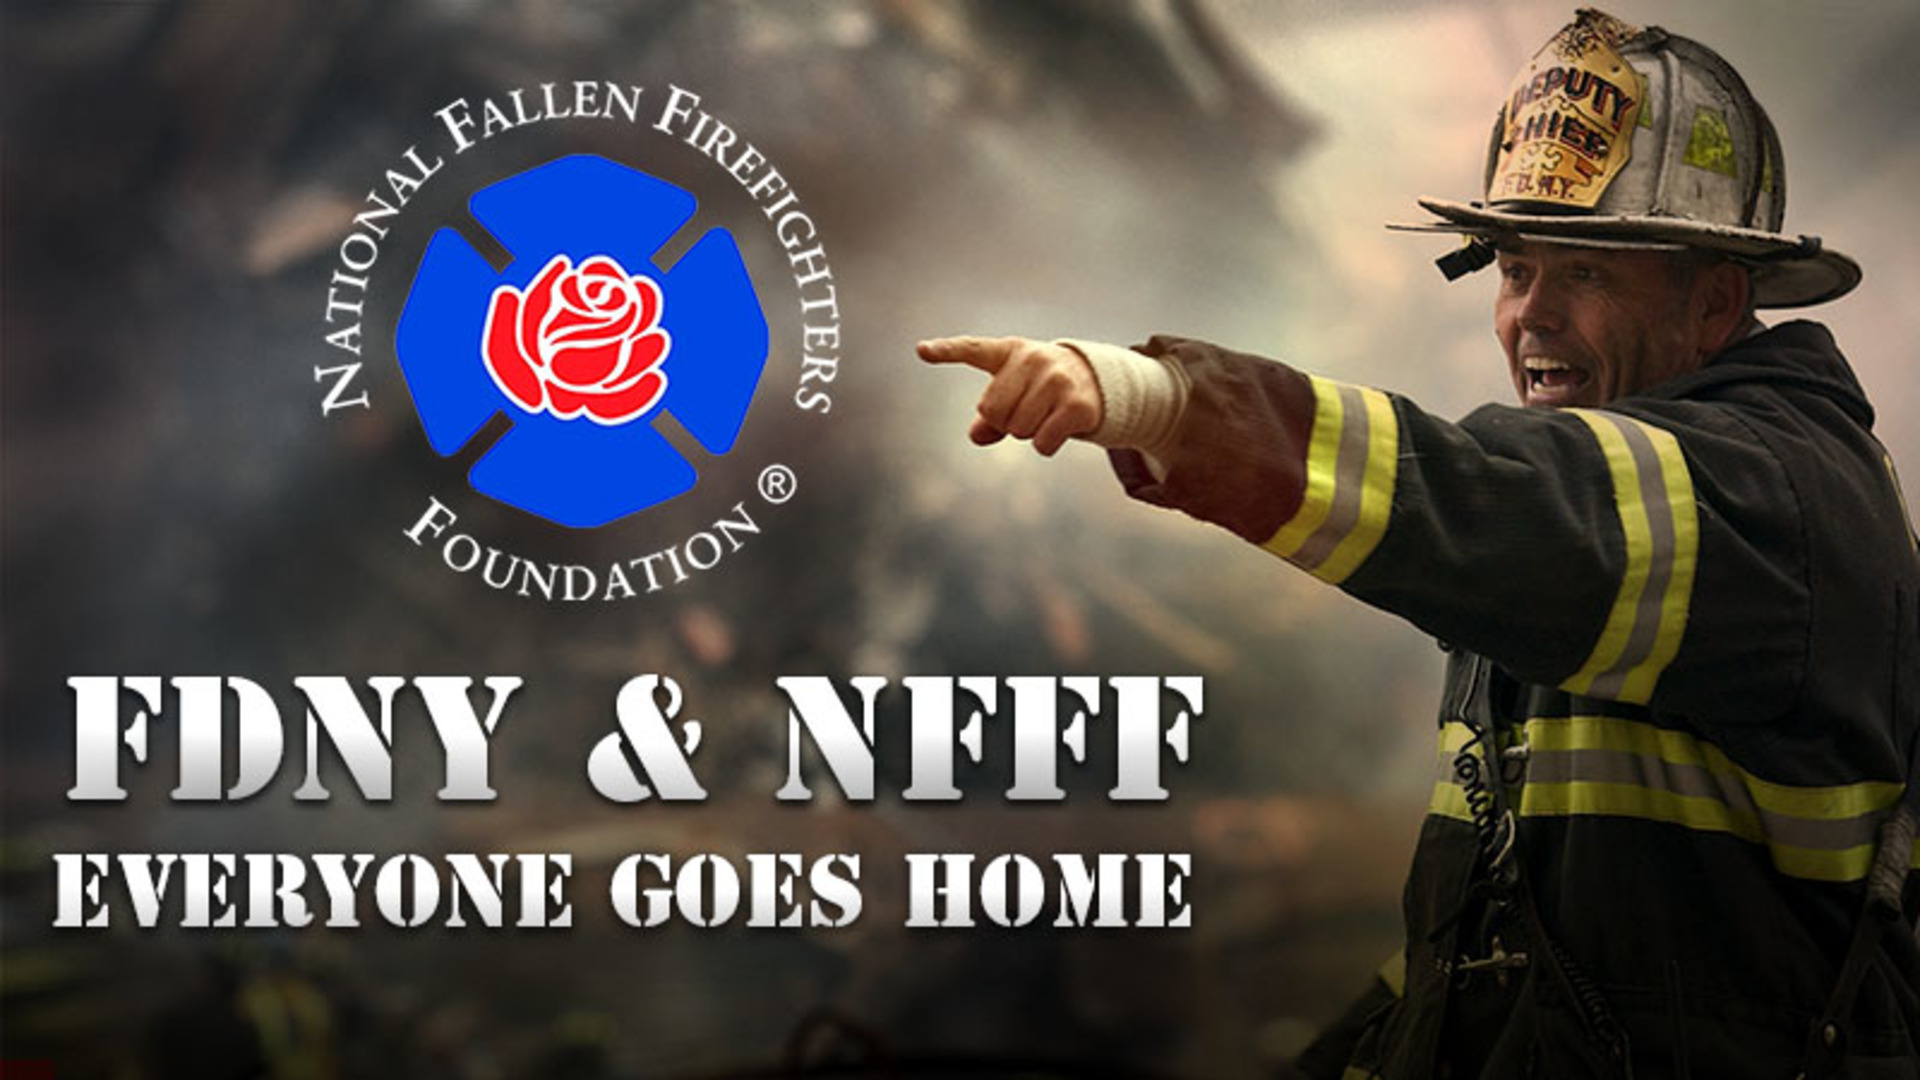 National Fallen Firefighters documentary on Valorous TV